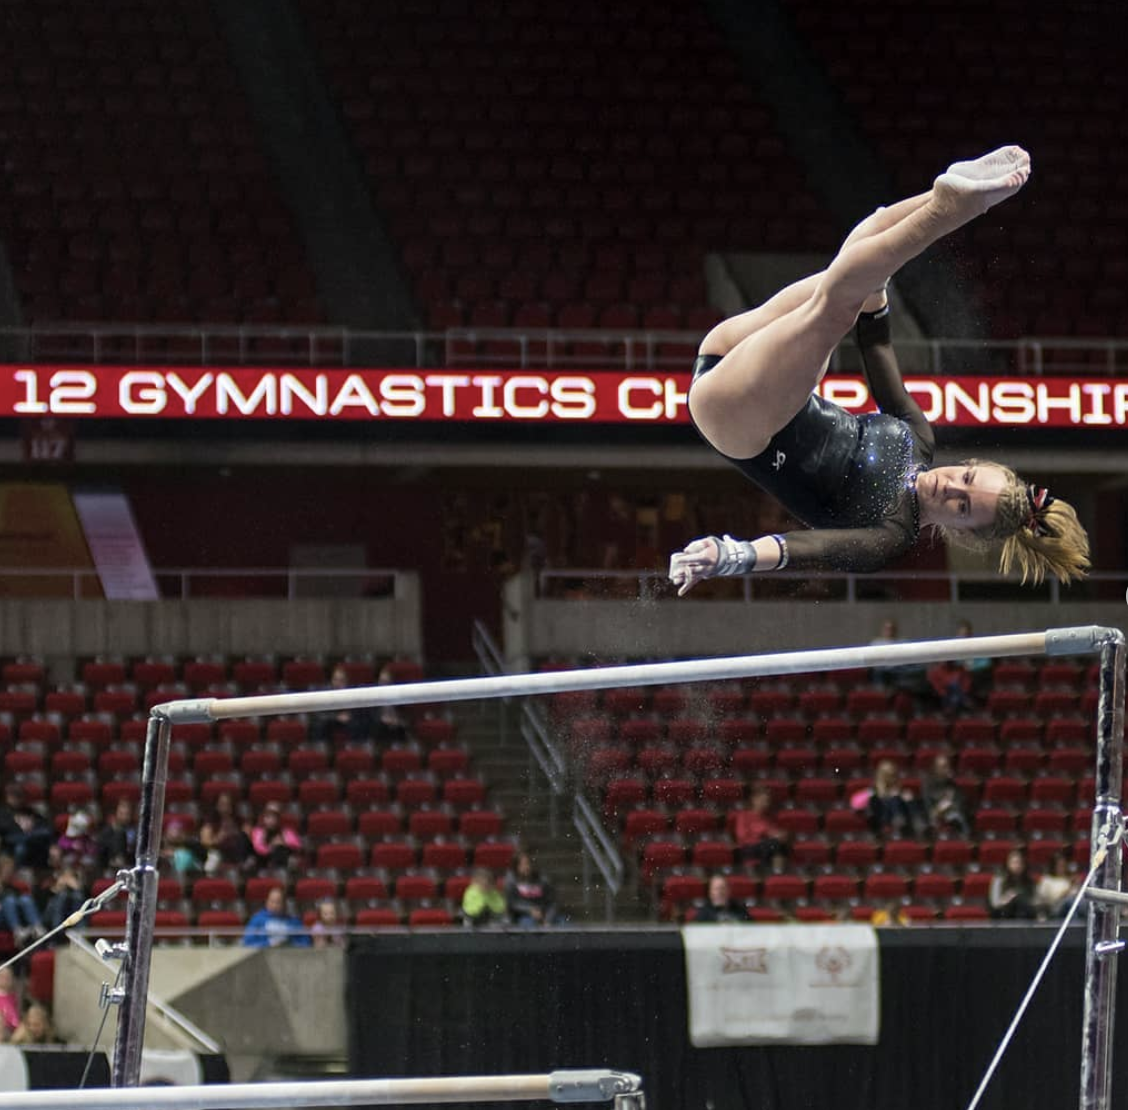 a gymnast flipping on the uneven bars